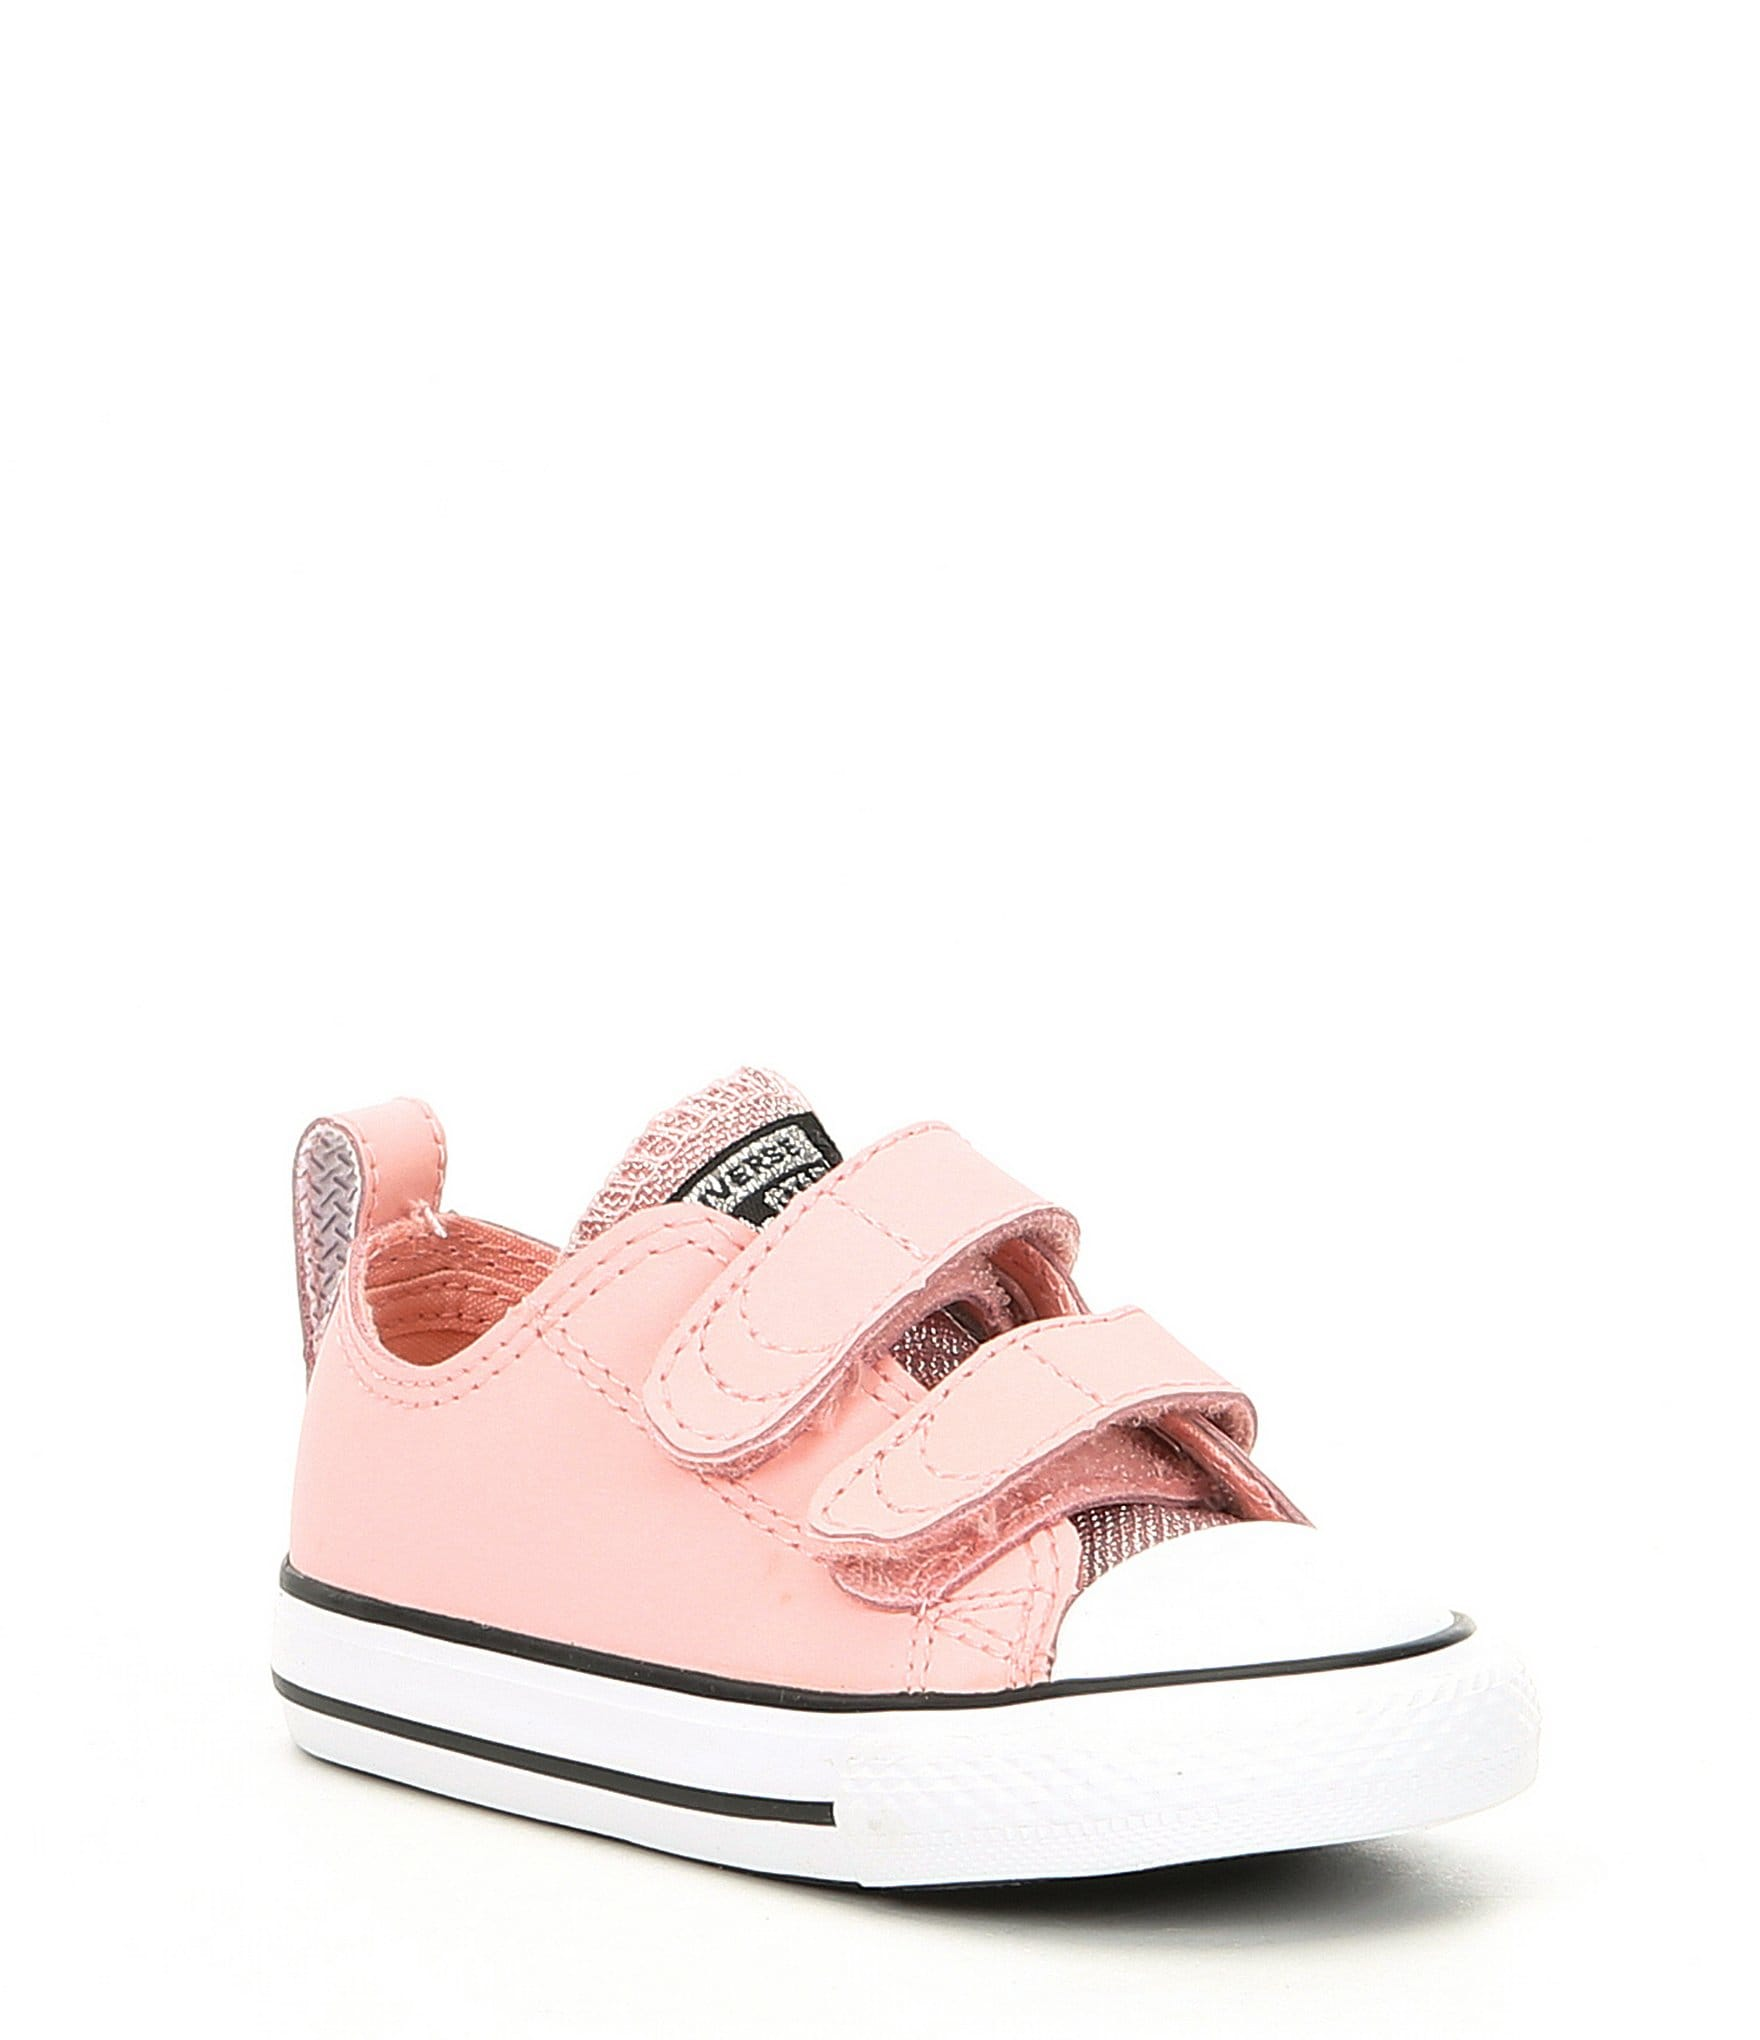 e98a48ae9bcd Pink Toddler Girls  Sneakers